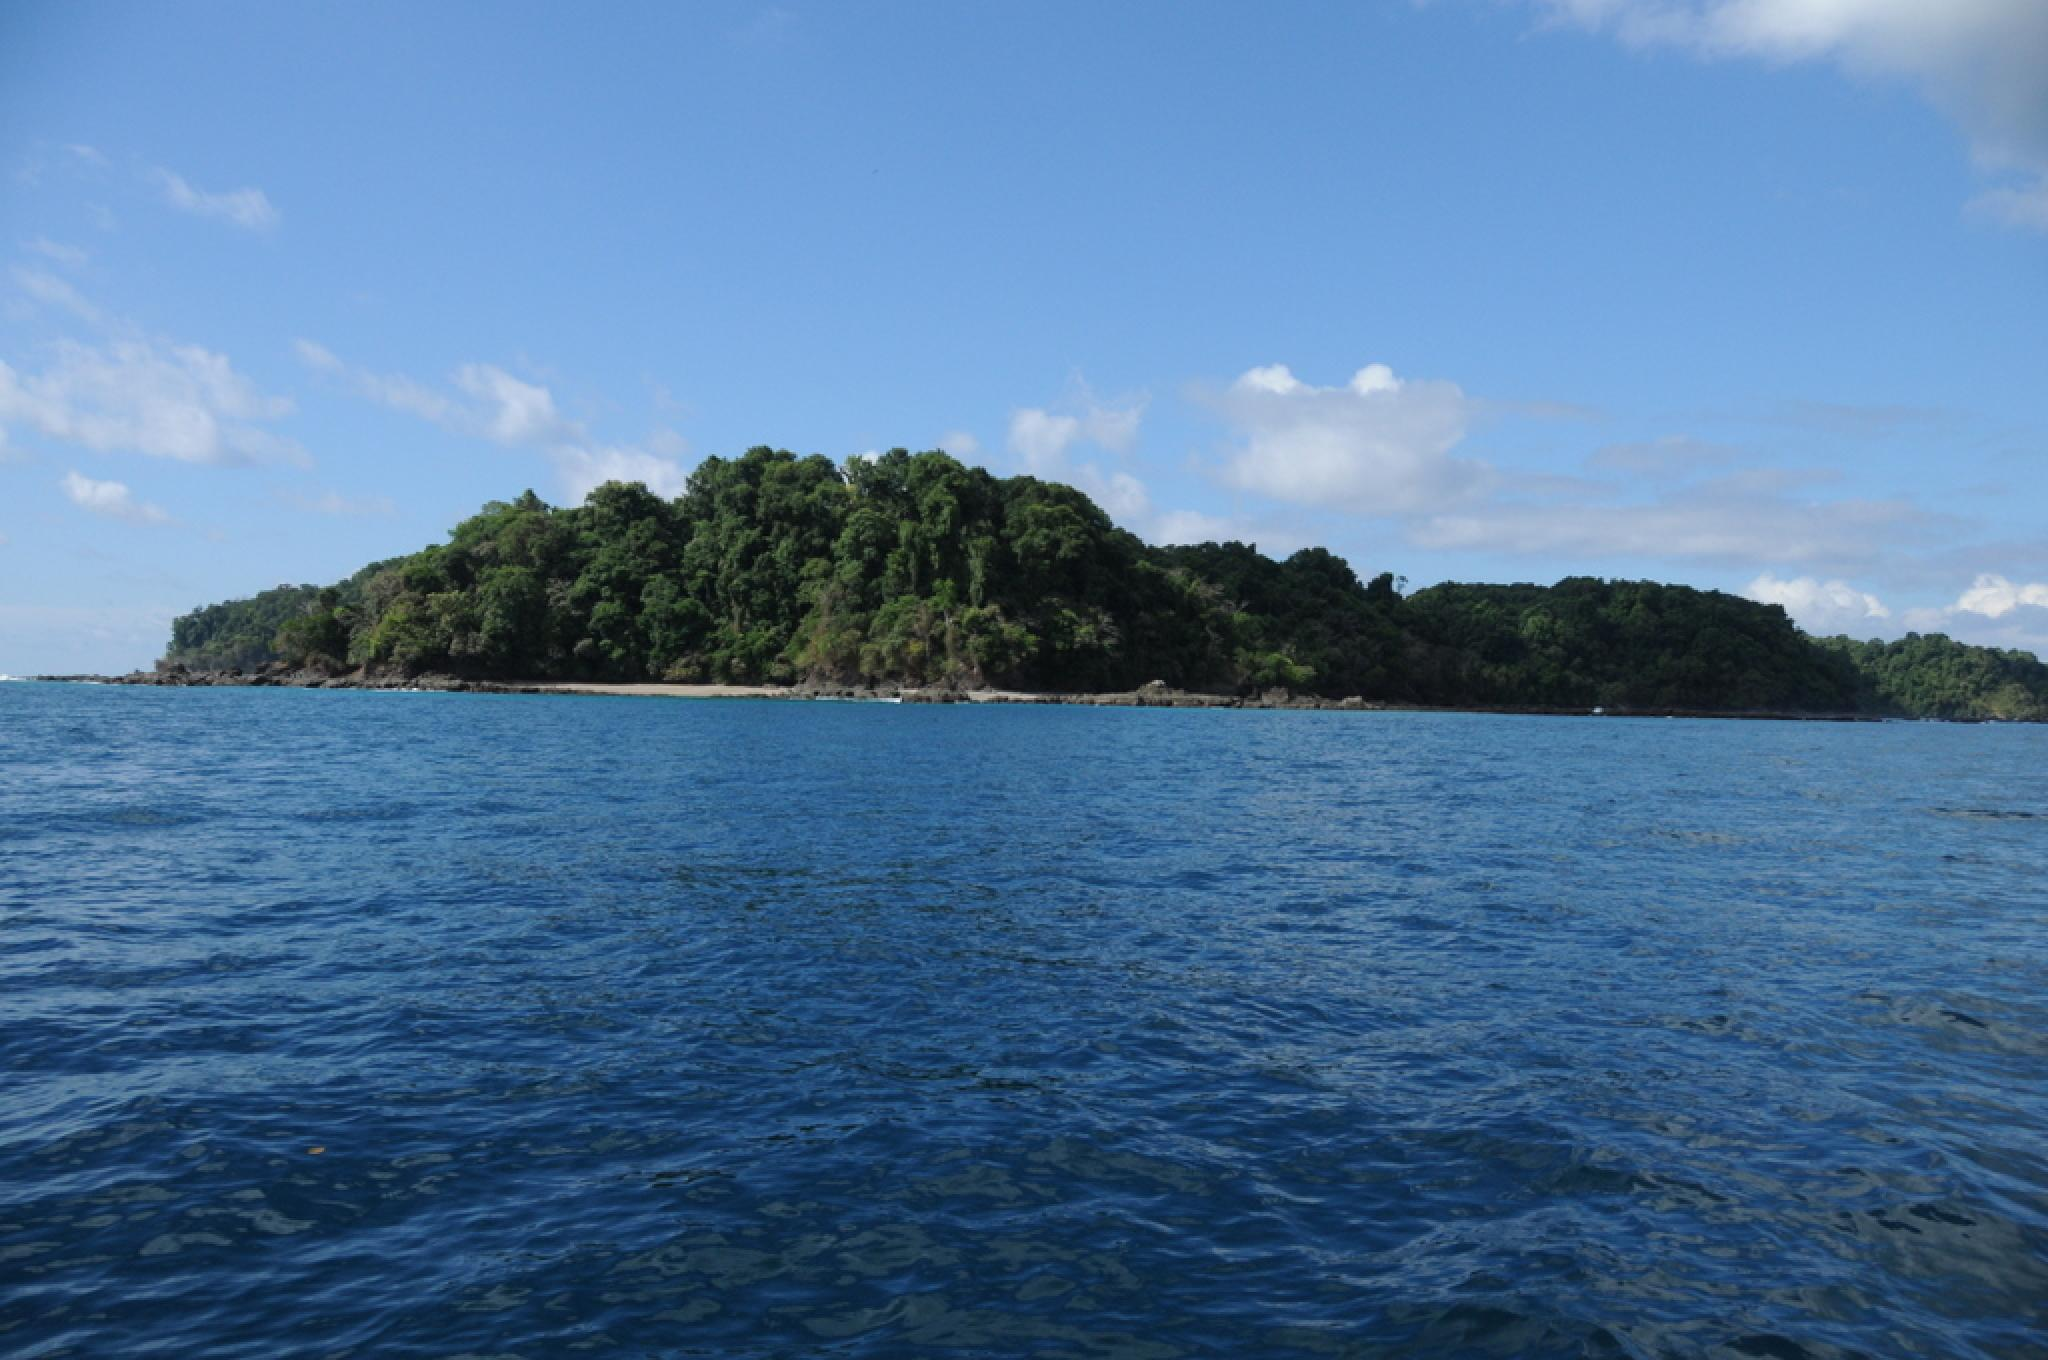 Snorkeling at Caño Island and visit to Violines Island